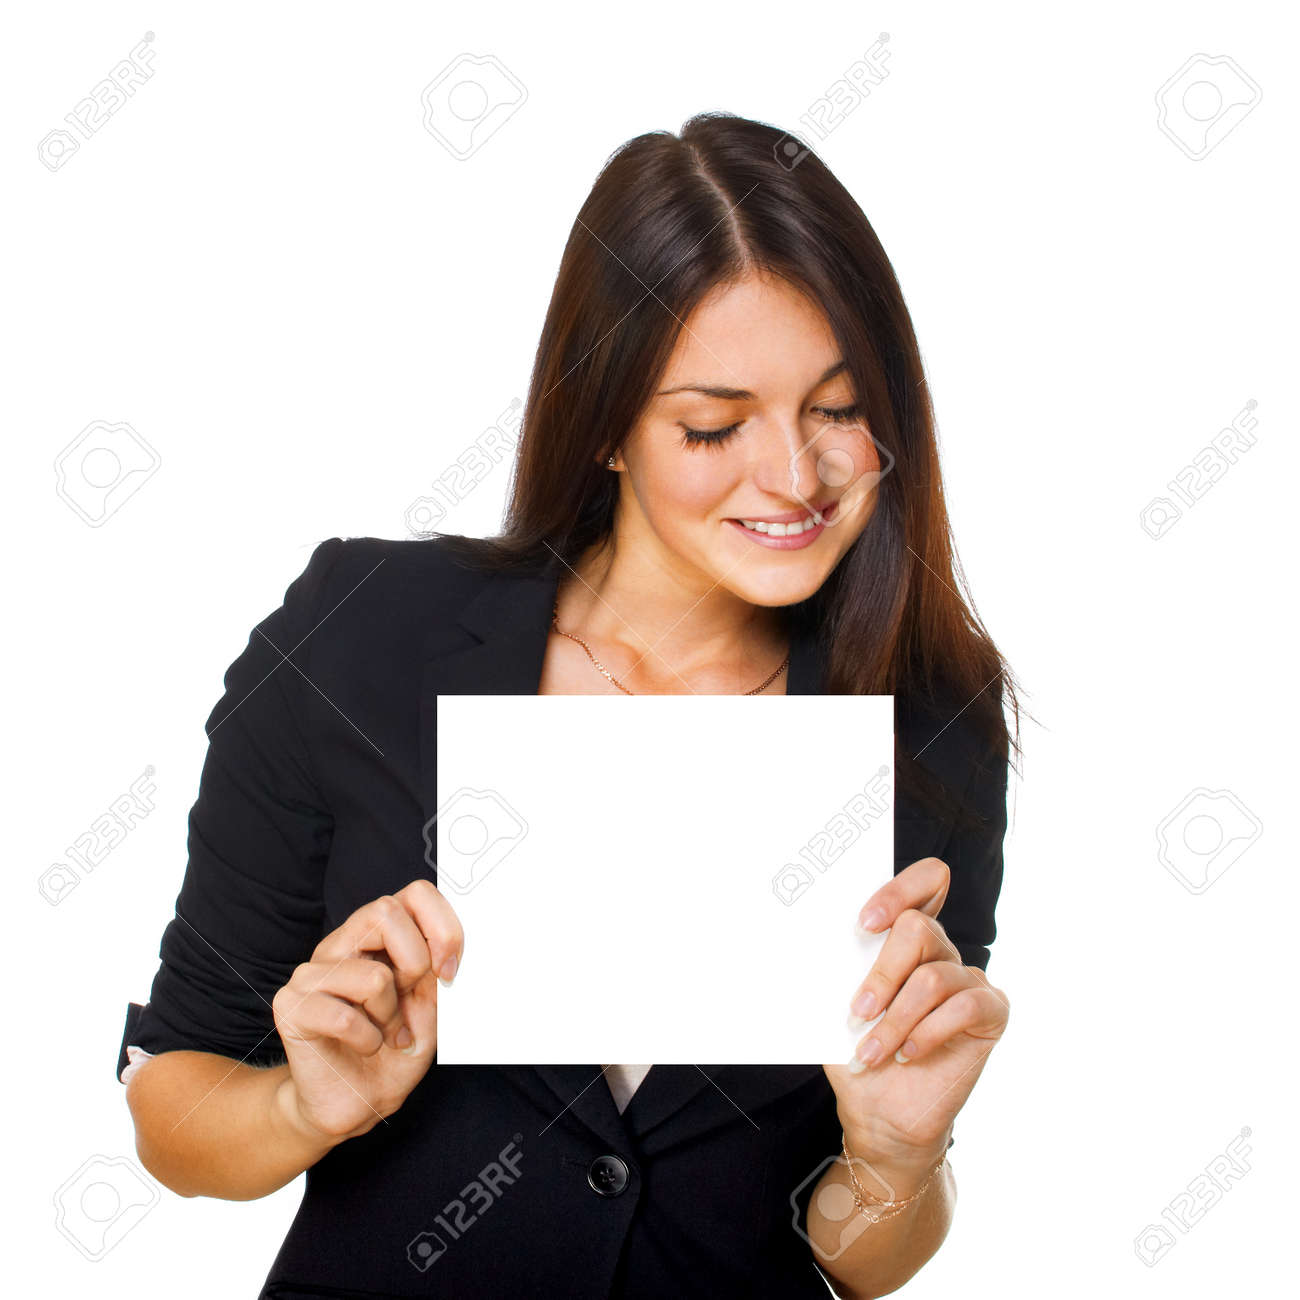 Smiling young business woman showing blank signboard, isolated on white background Stock Photo - 11261054